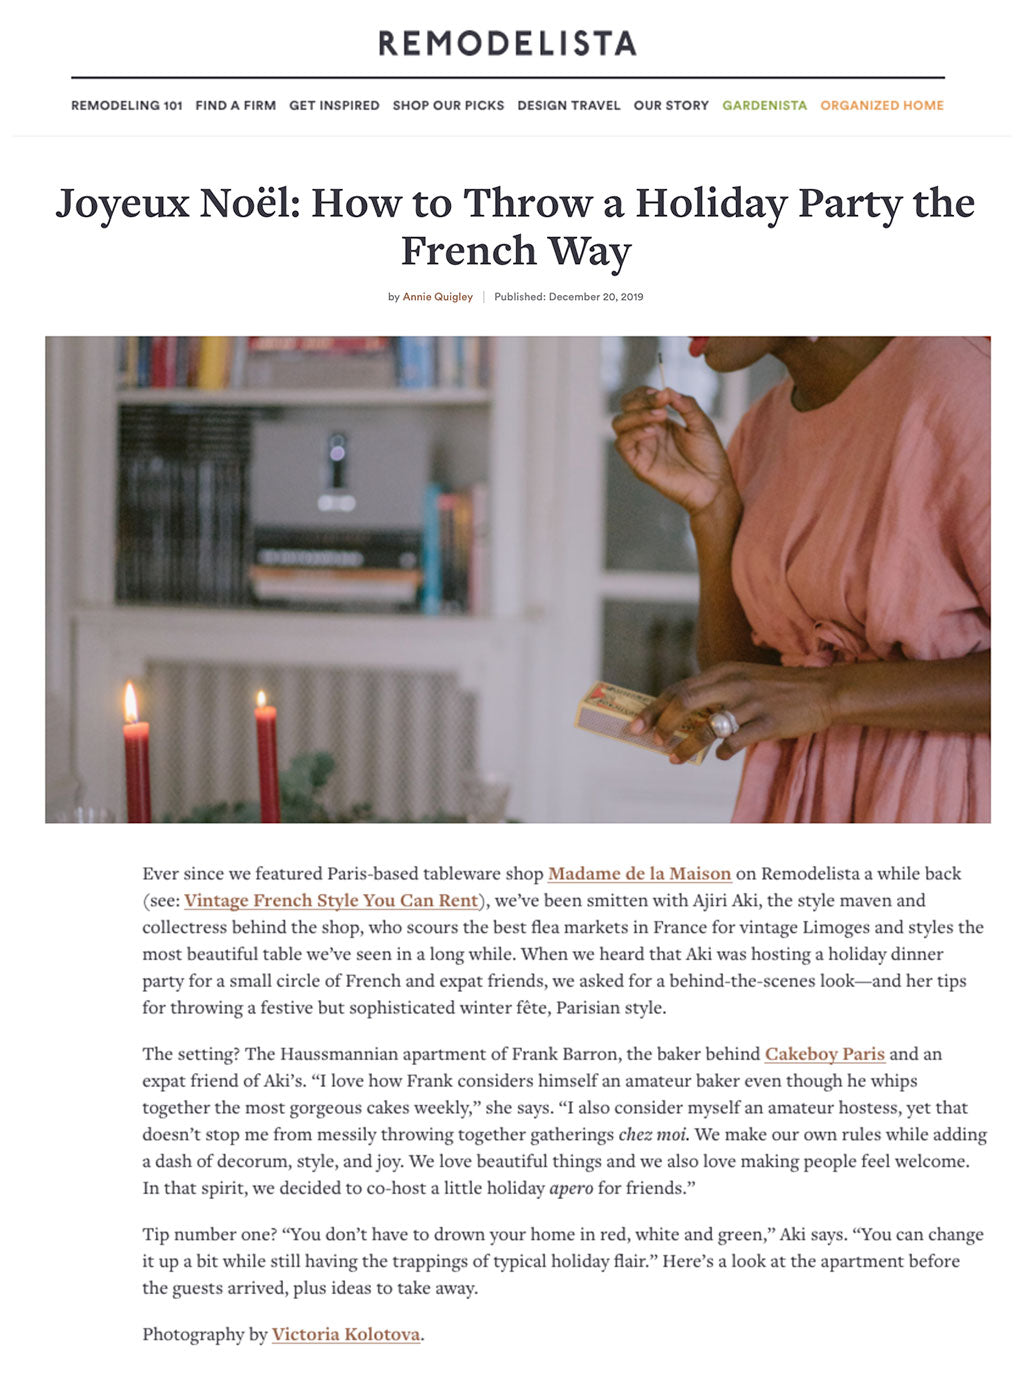 Madame de la Maison throws a French holiday party on Remodelista